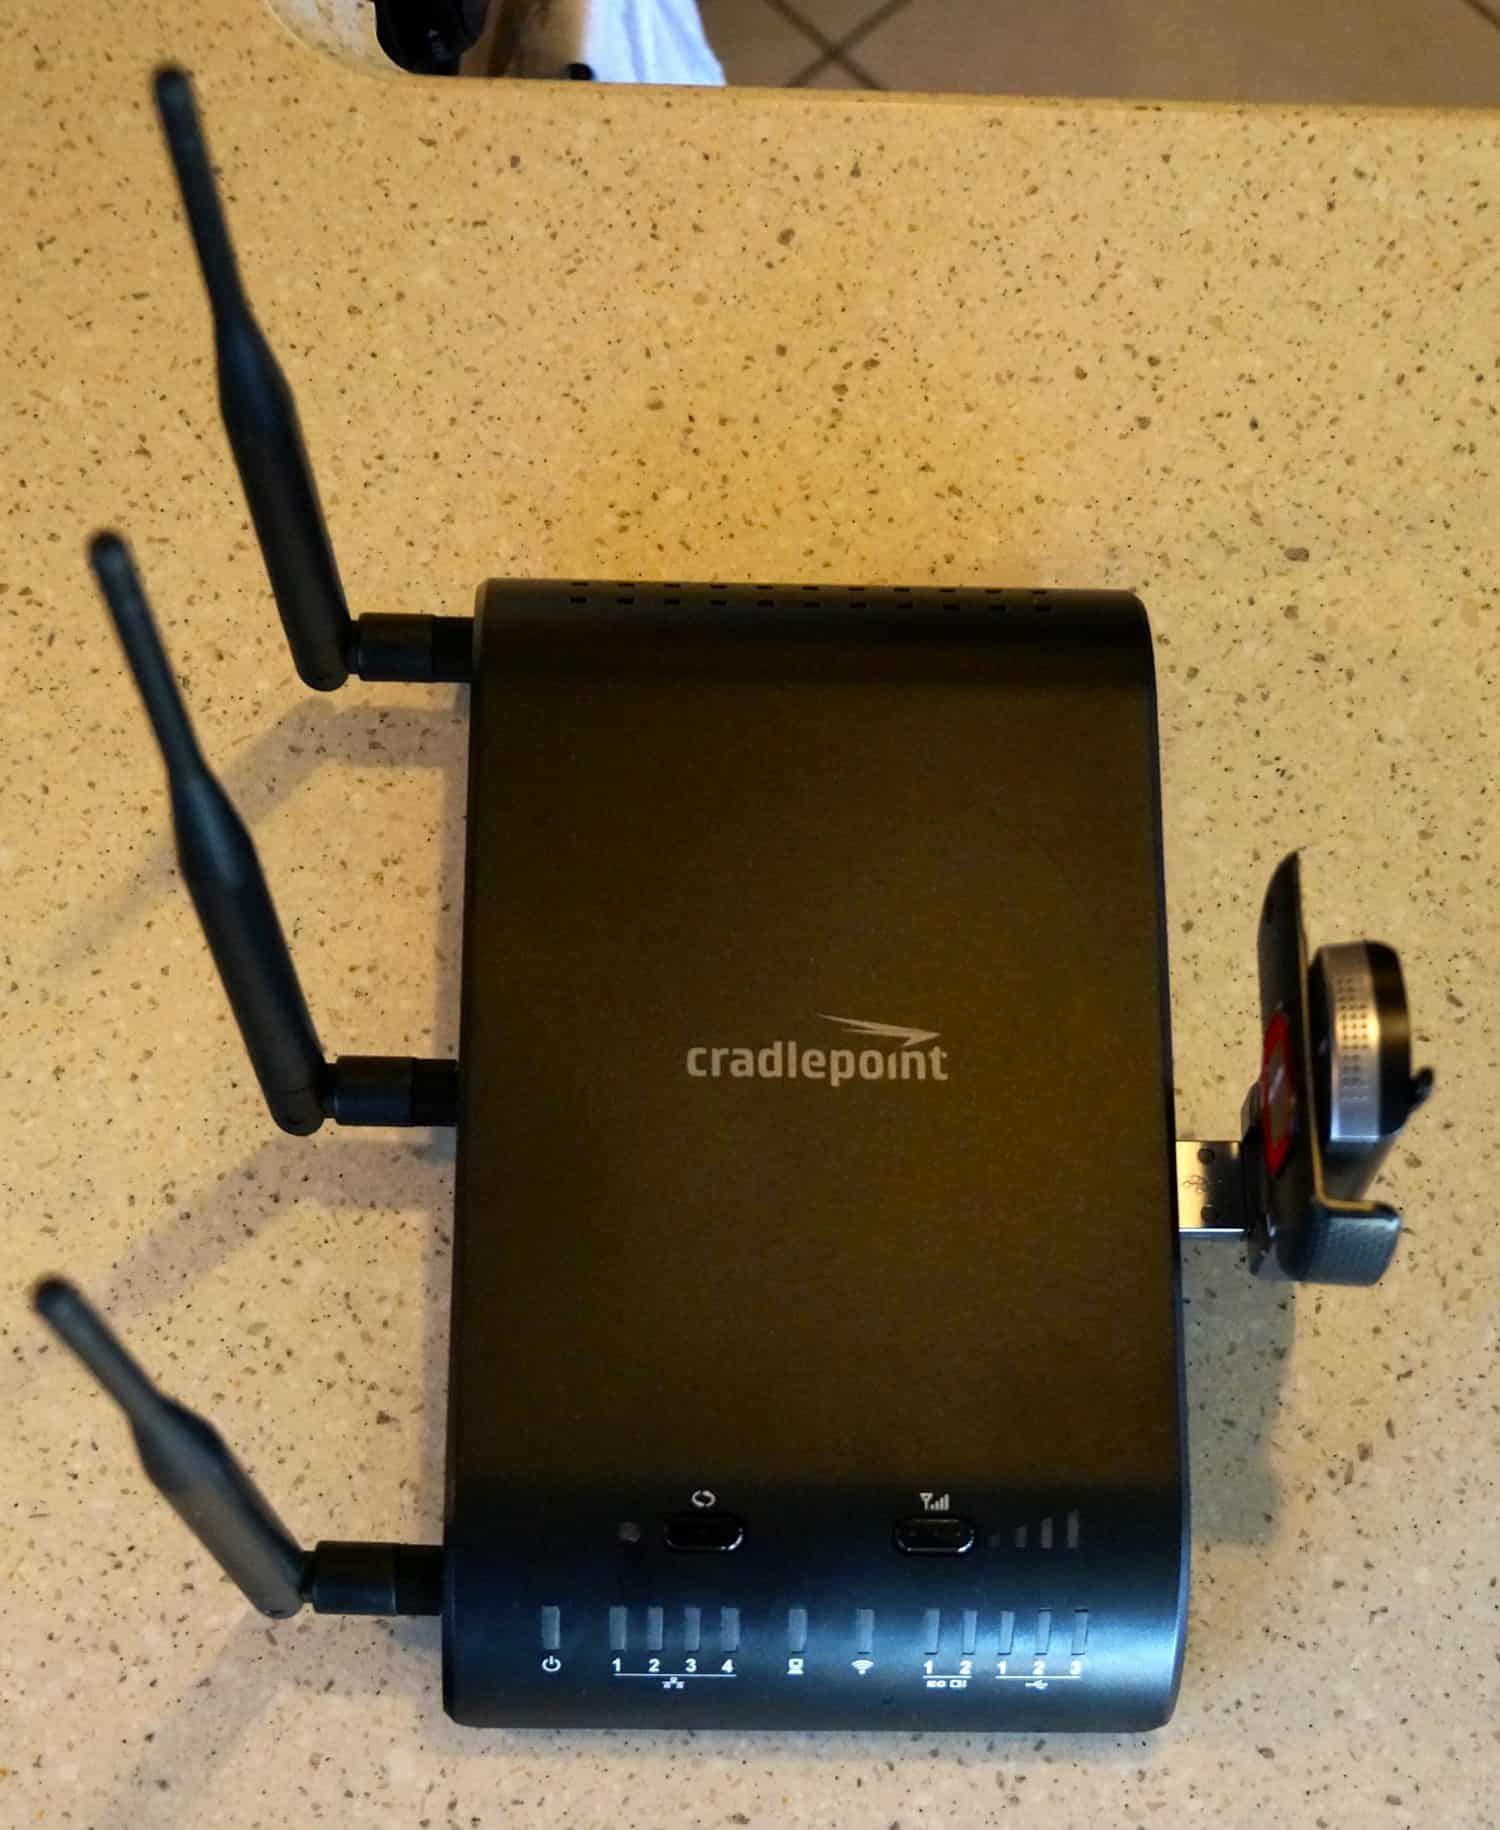 Cradlepoint router with modem in GoPetFriendly.com Motorhome